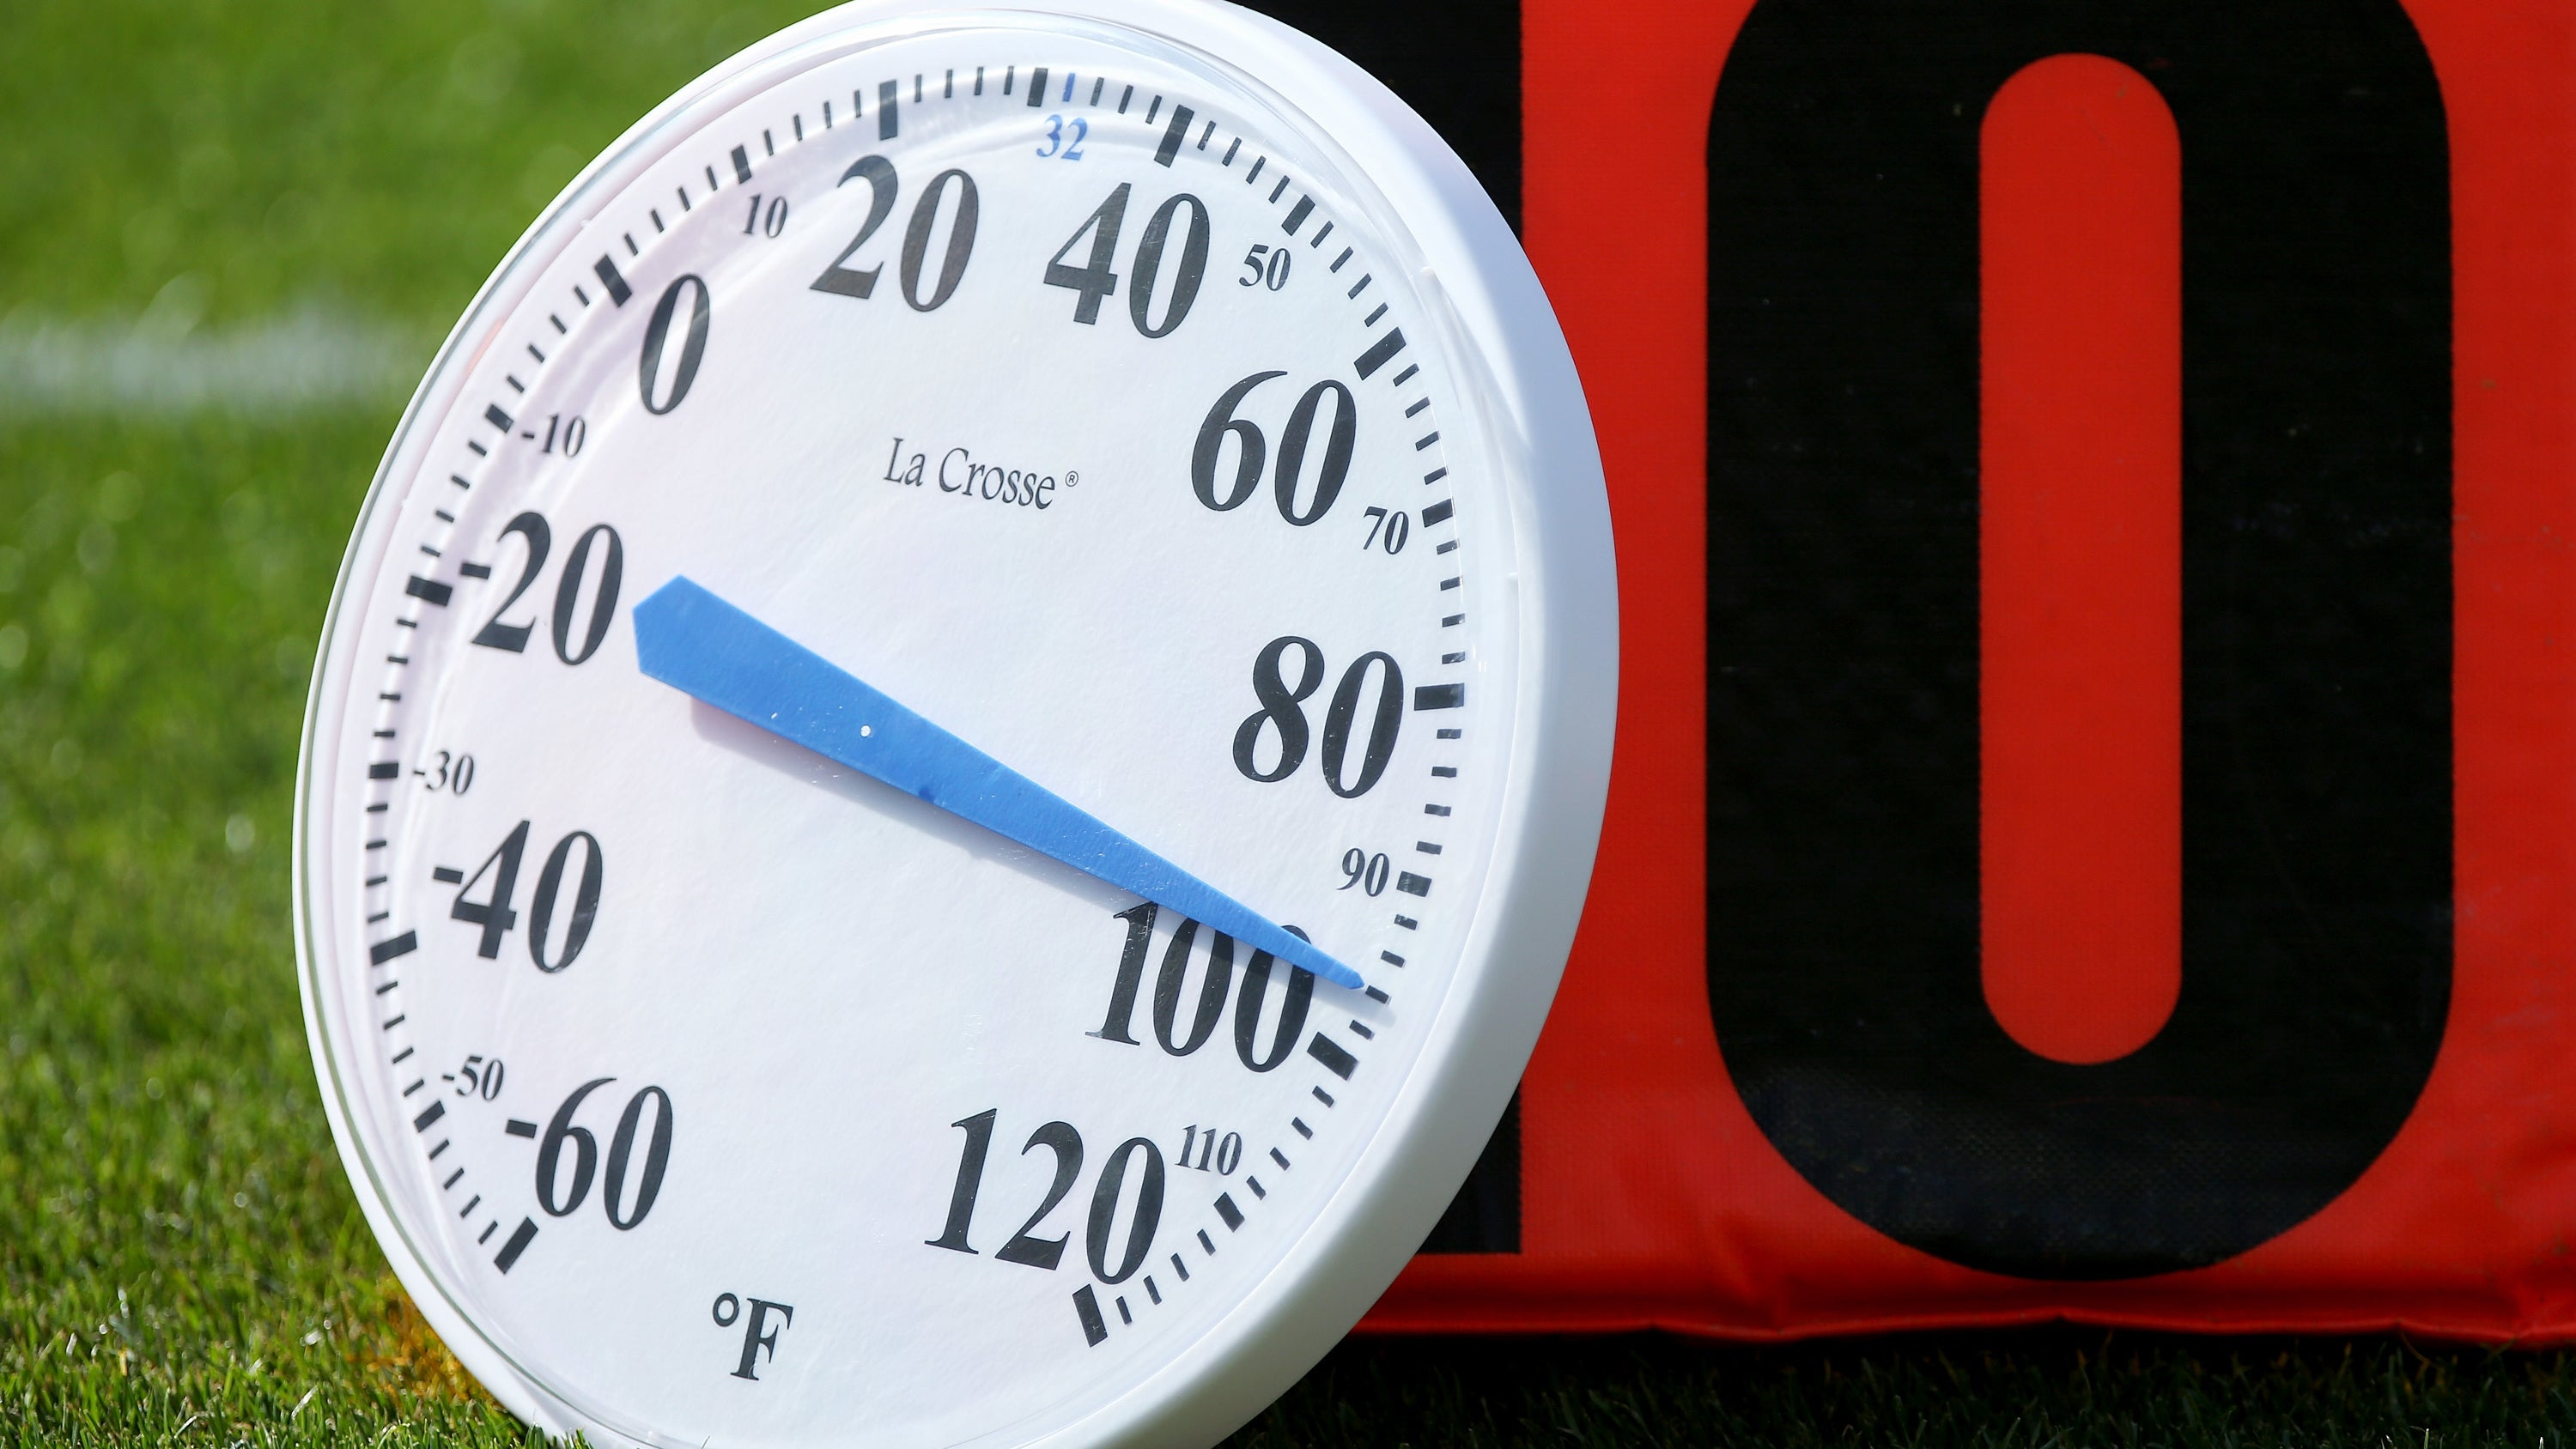 Thermometers Have Continued Bad News For The US